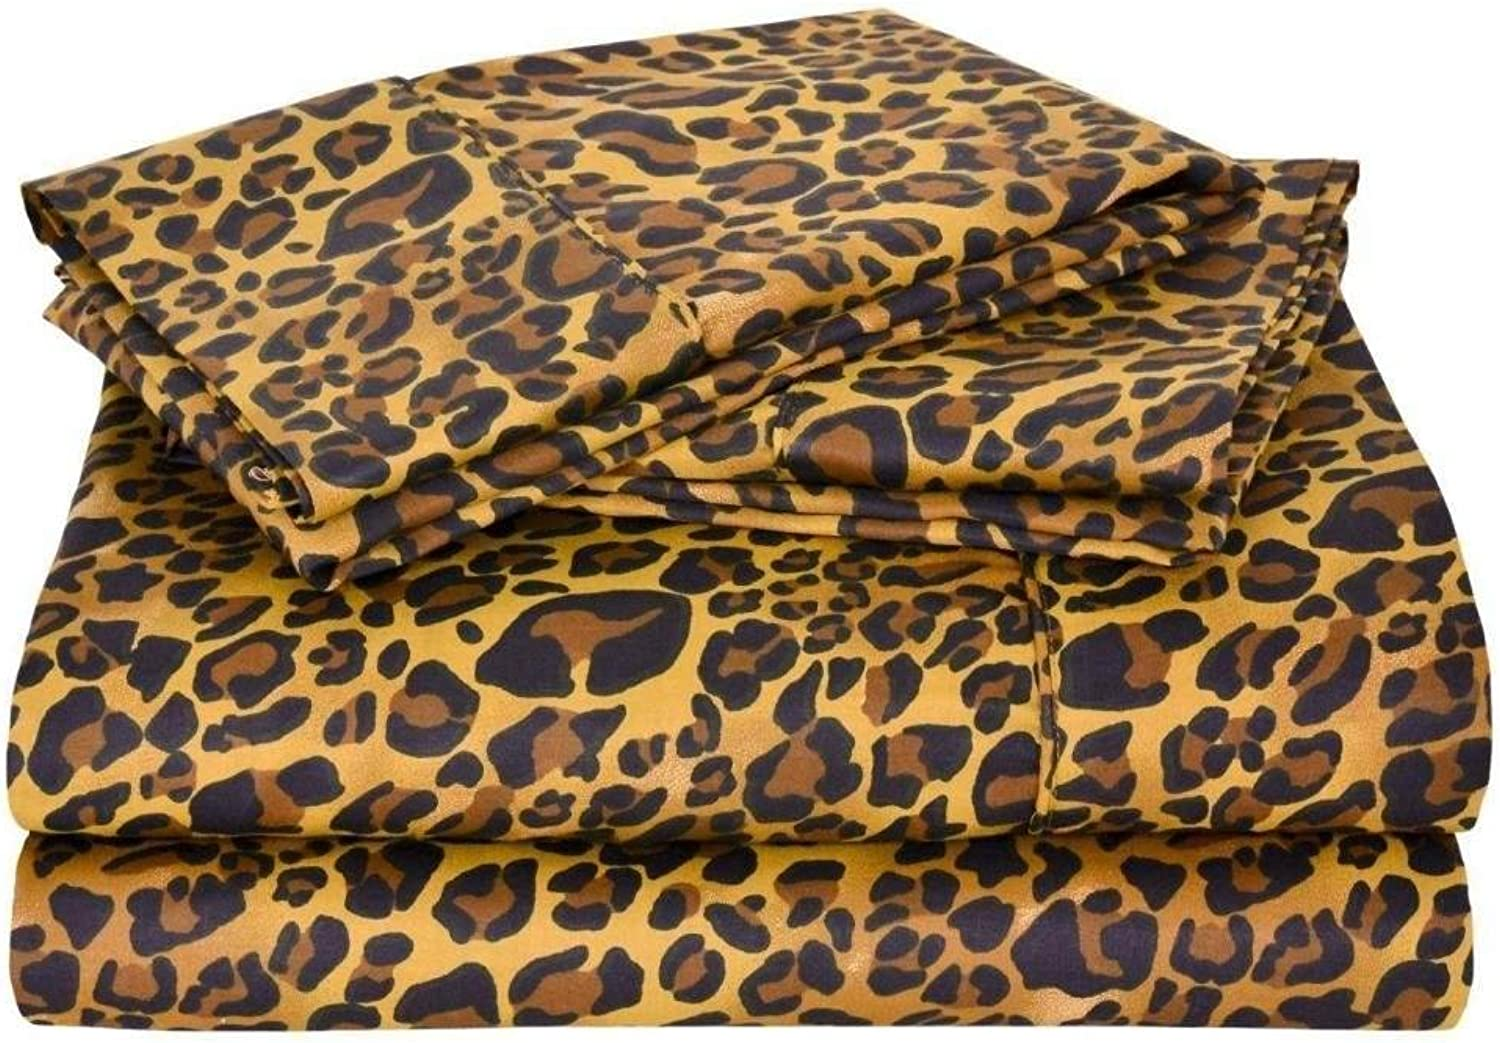 4 PCs Sheet Set, 100% Egyptian Cotton 400 Thread Count 6  Deep Pocket RV Trucks, Campers, Airstream, Bus, Boat and motorhomes Easy to fit in RVMattress Leopard Print, Full 53 x80  Size